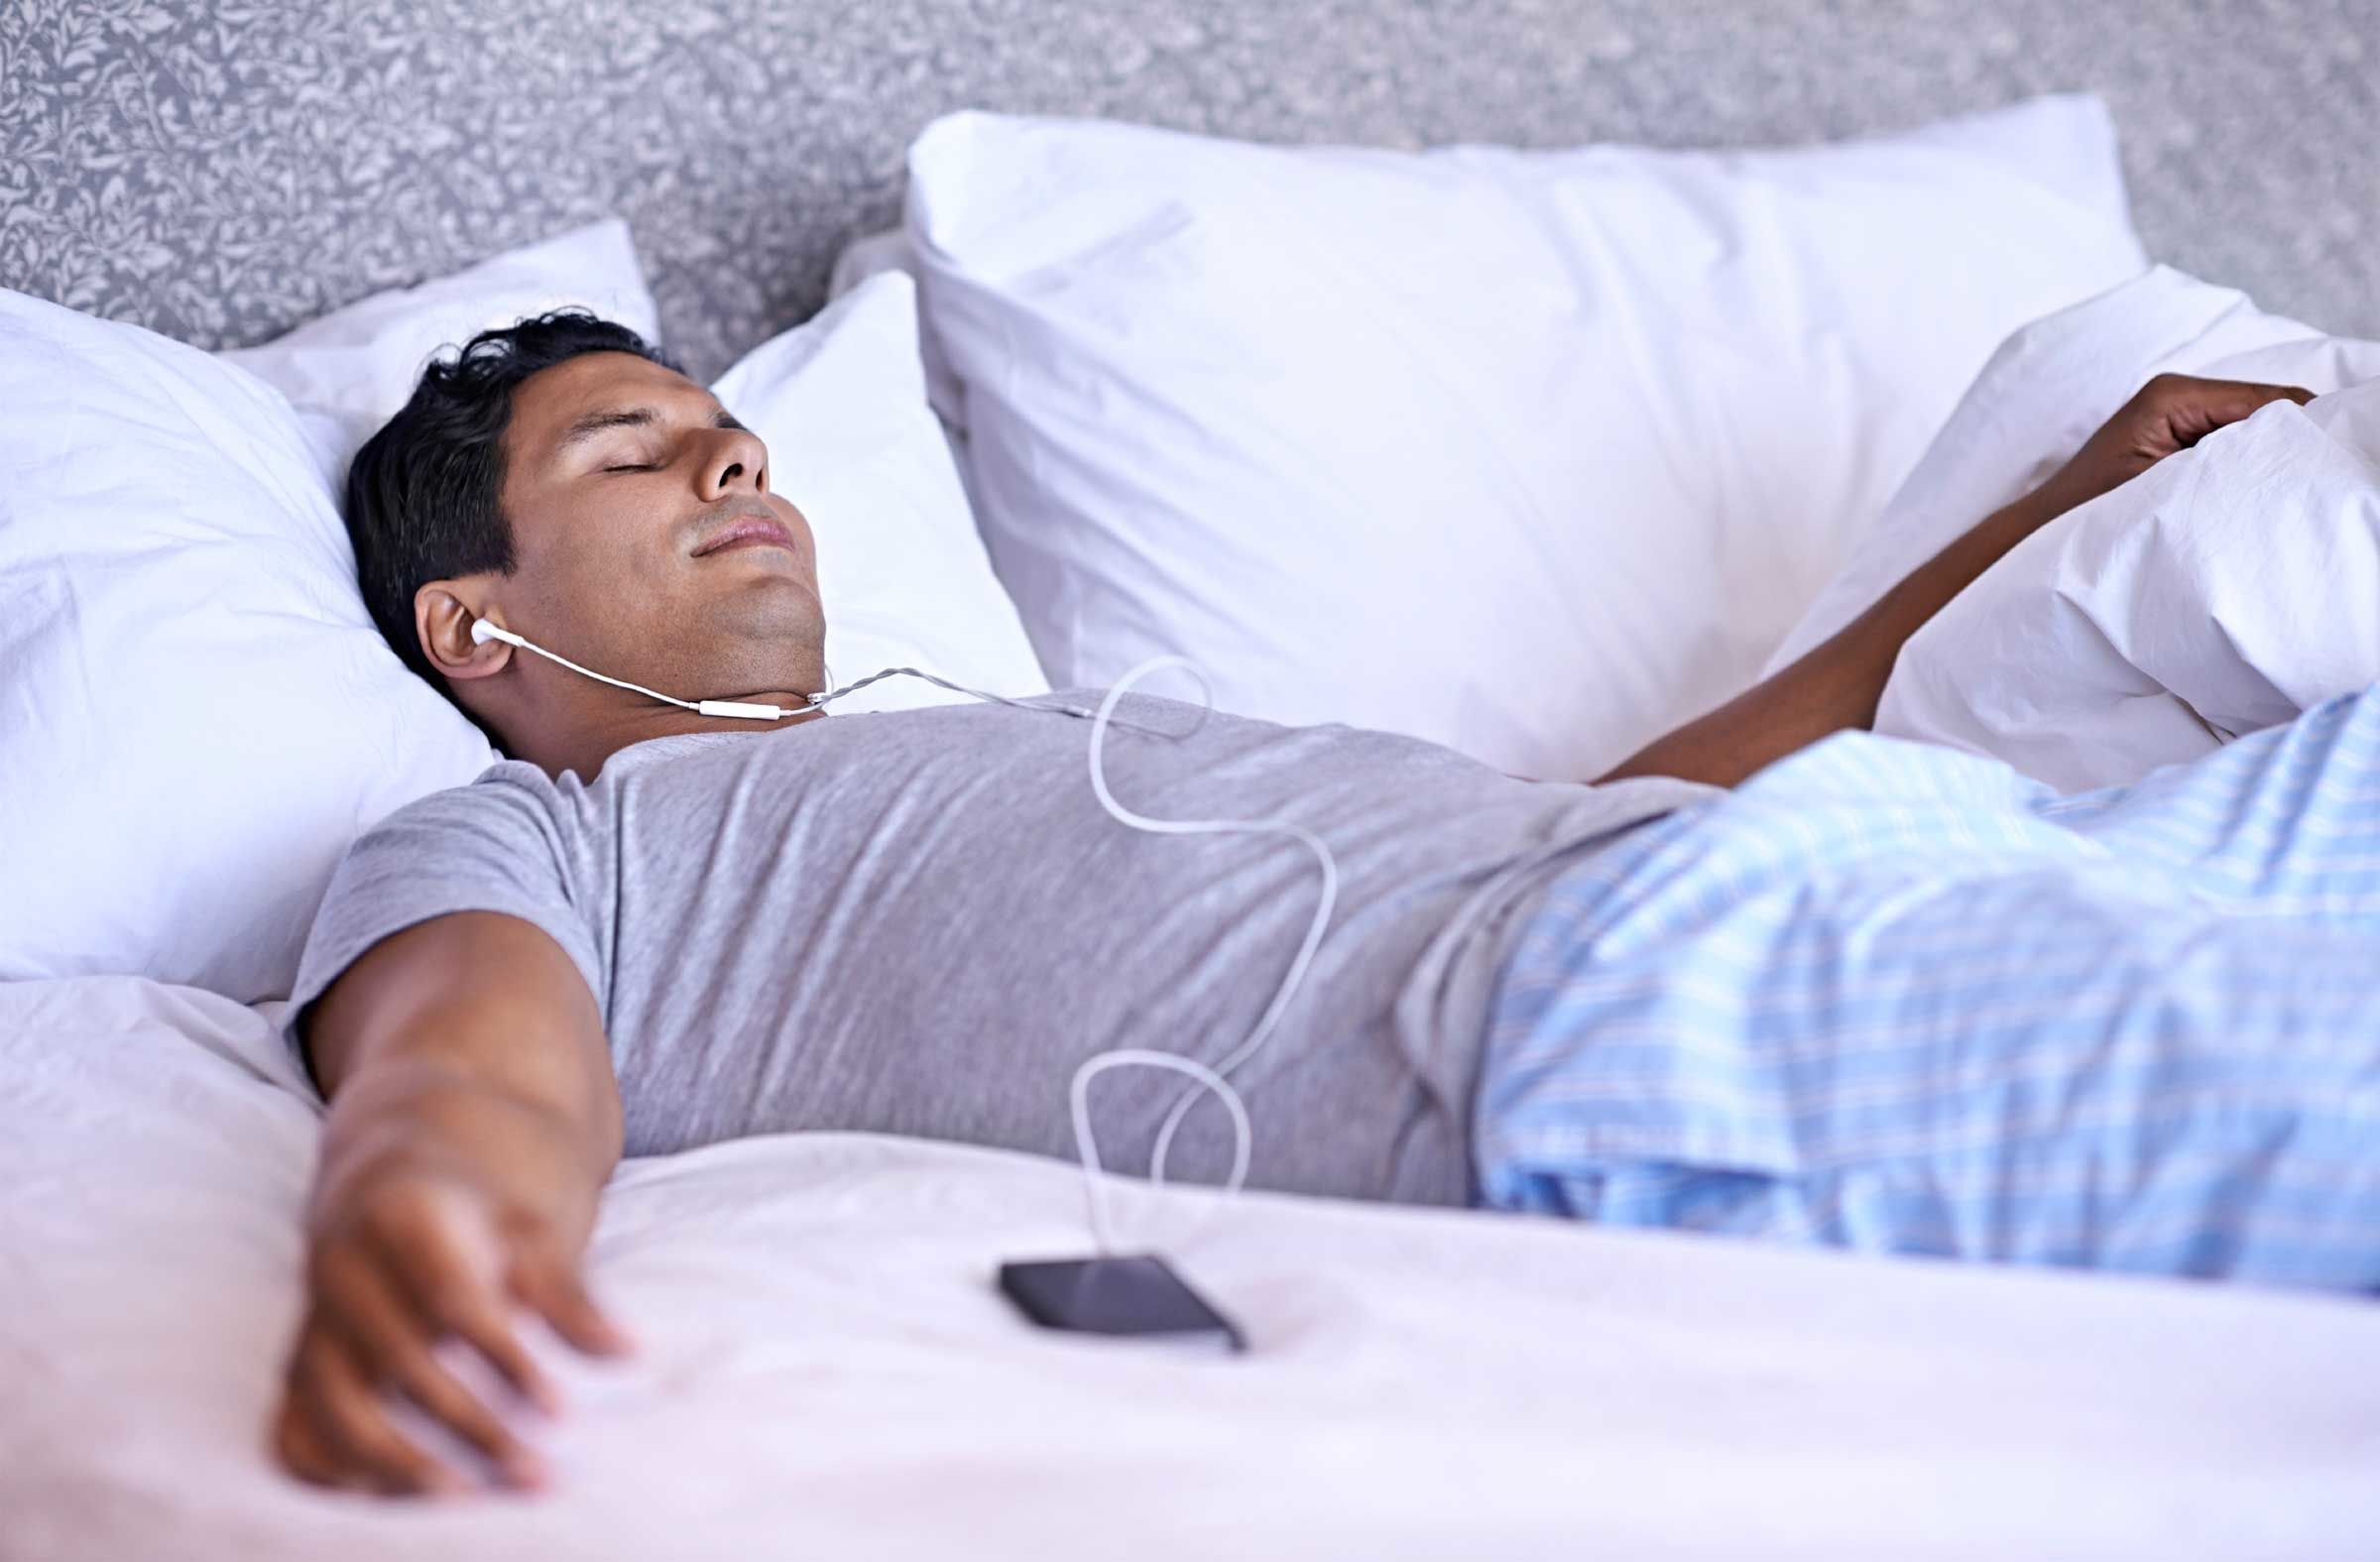 Sleeping with music